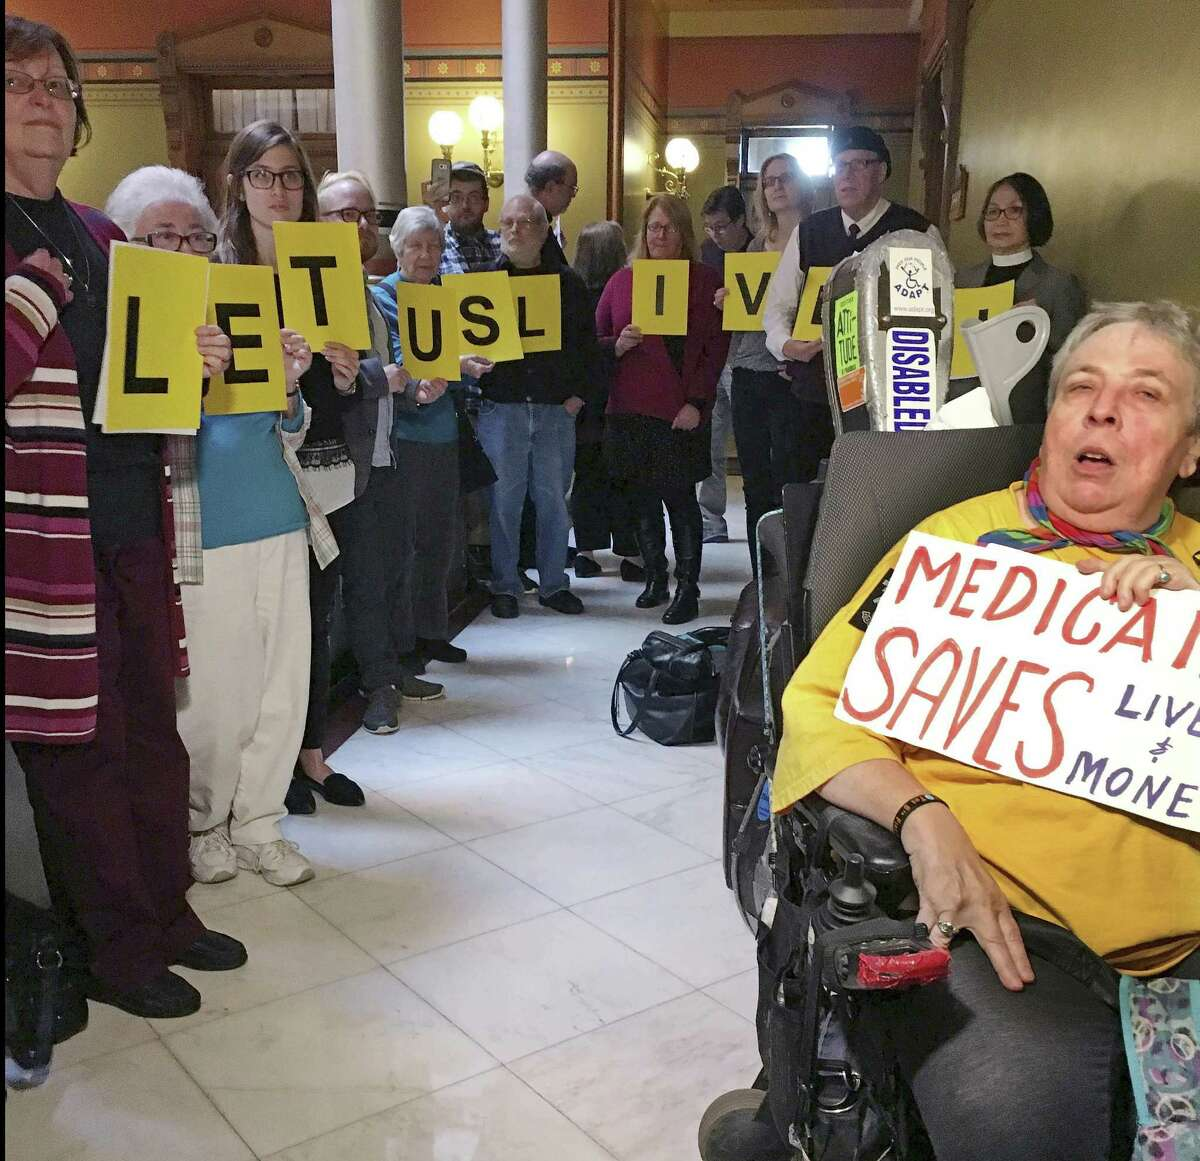 Activists, urging Connecticut state legislative leaders not to cut Medicaid spending, wait outside the room where a new two-year, bipartisan budget agreement was being negotiated, Wednesday, Oct. 18, 2017, at the Capitol in Hartford, Conn.